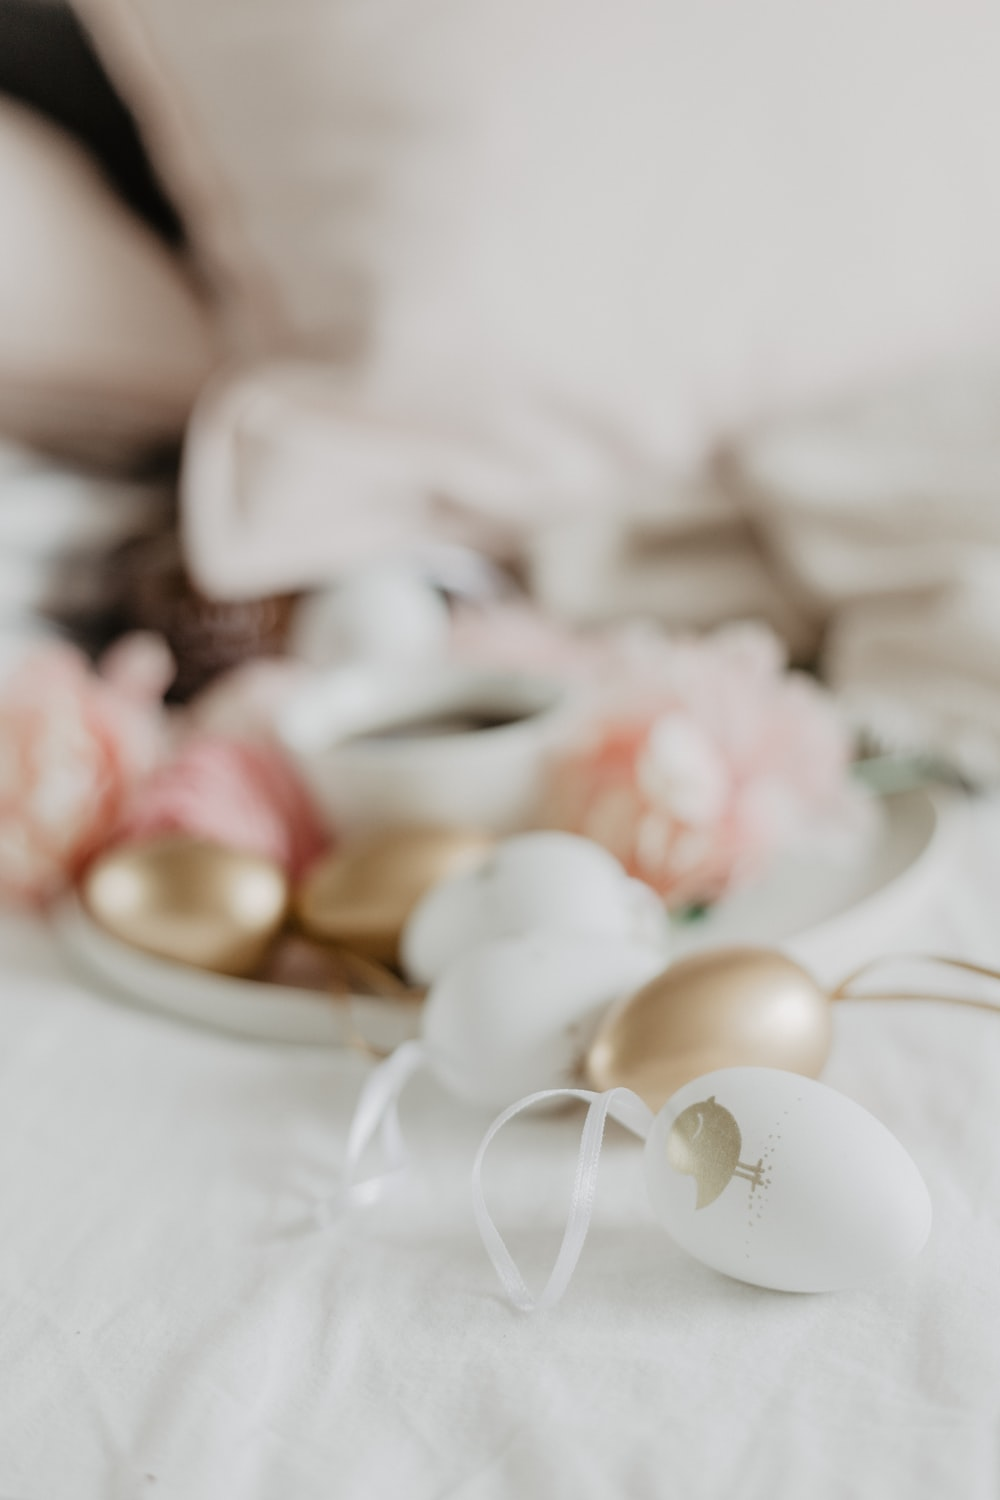 white and gold decors on white surface